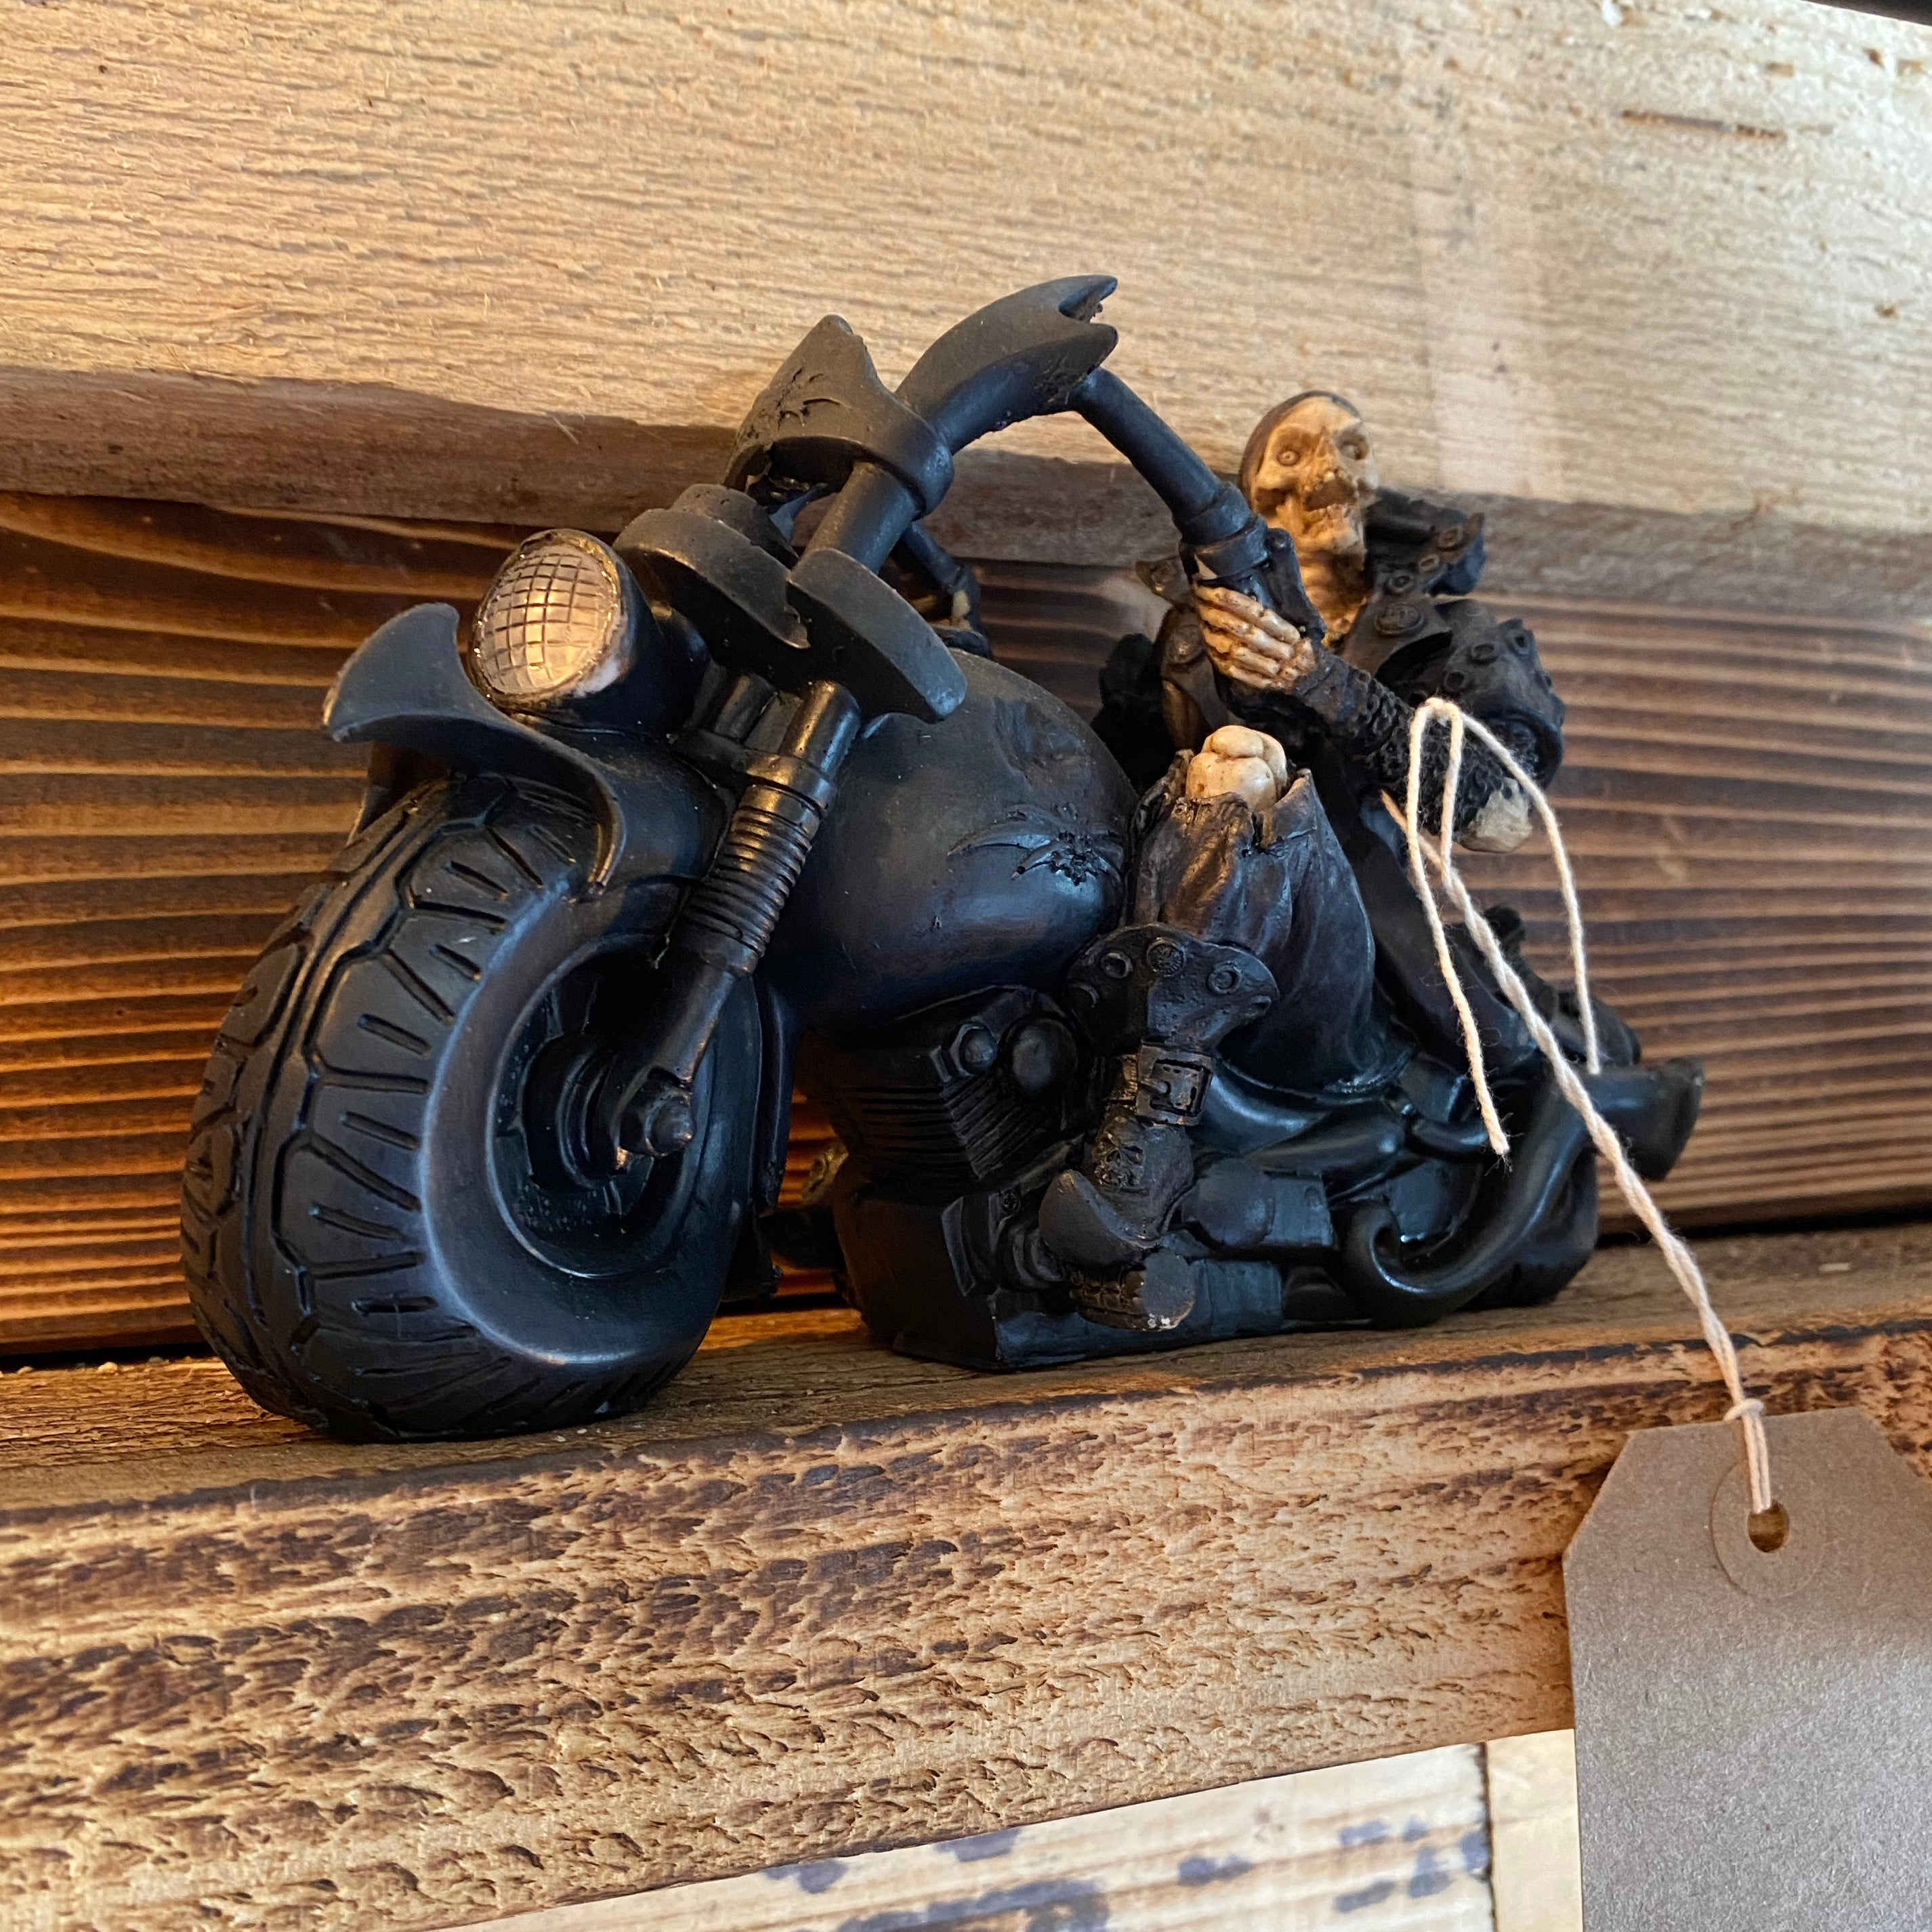 Decorative Motorcycle Ornament